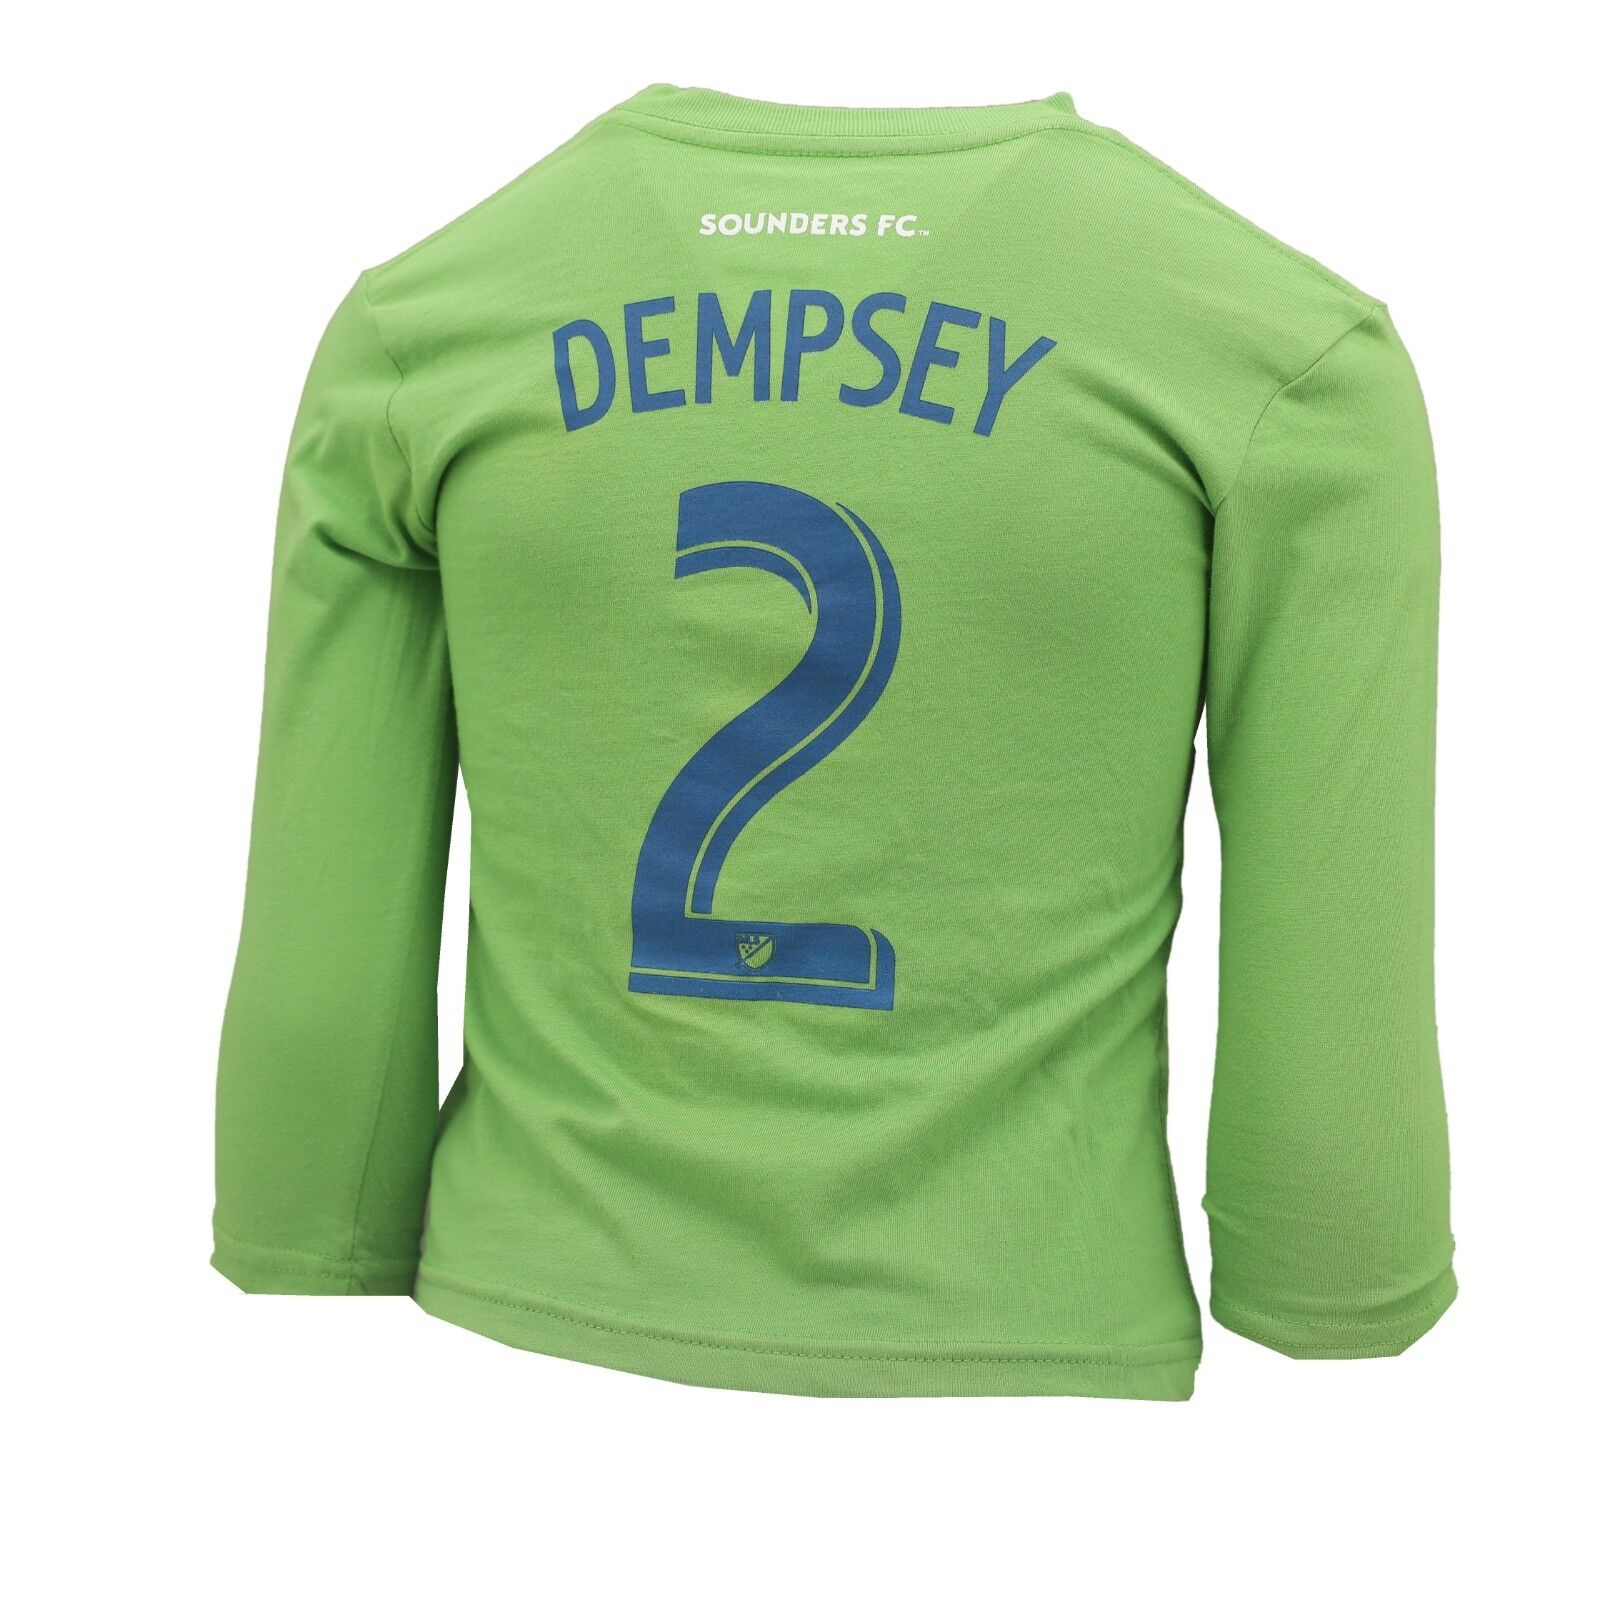 on sale bceb4 521c3 Seattle Sounders MLS Adidas Youth Kids Size Clint Dempsey Long Sleeve Shirt  New